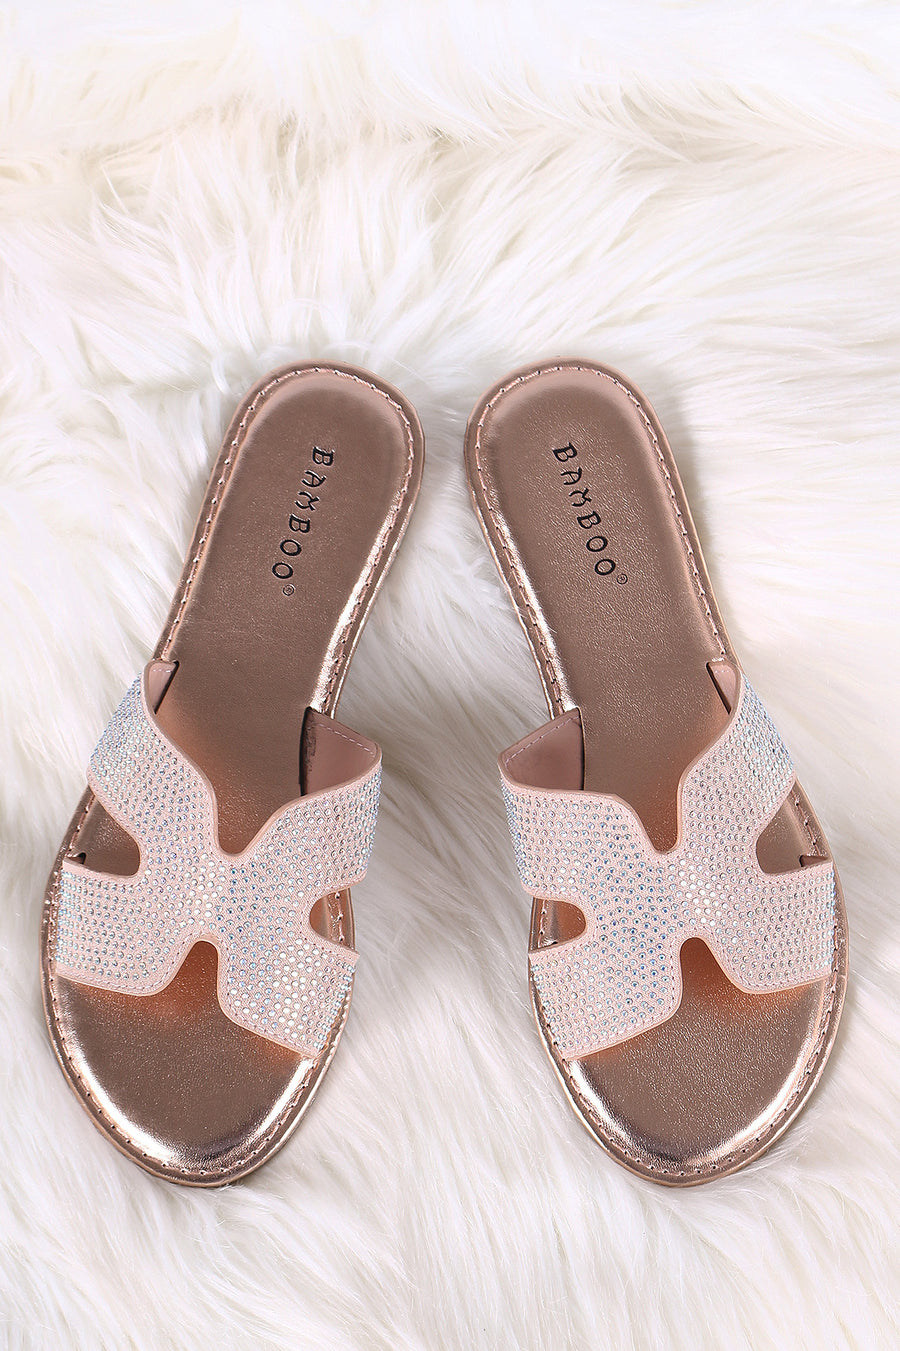 95f6f5c6c89a Bamboo Rhinestone Accent H-Band Open Toe Slide Sandal-Shoes